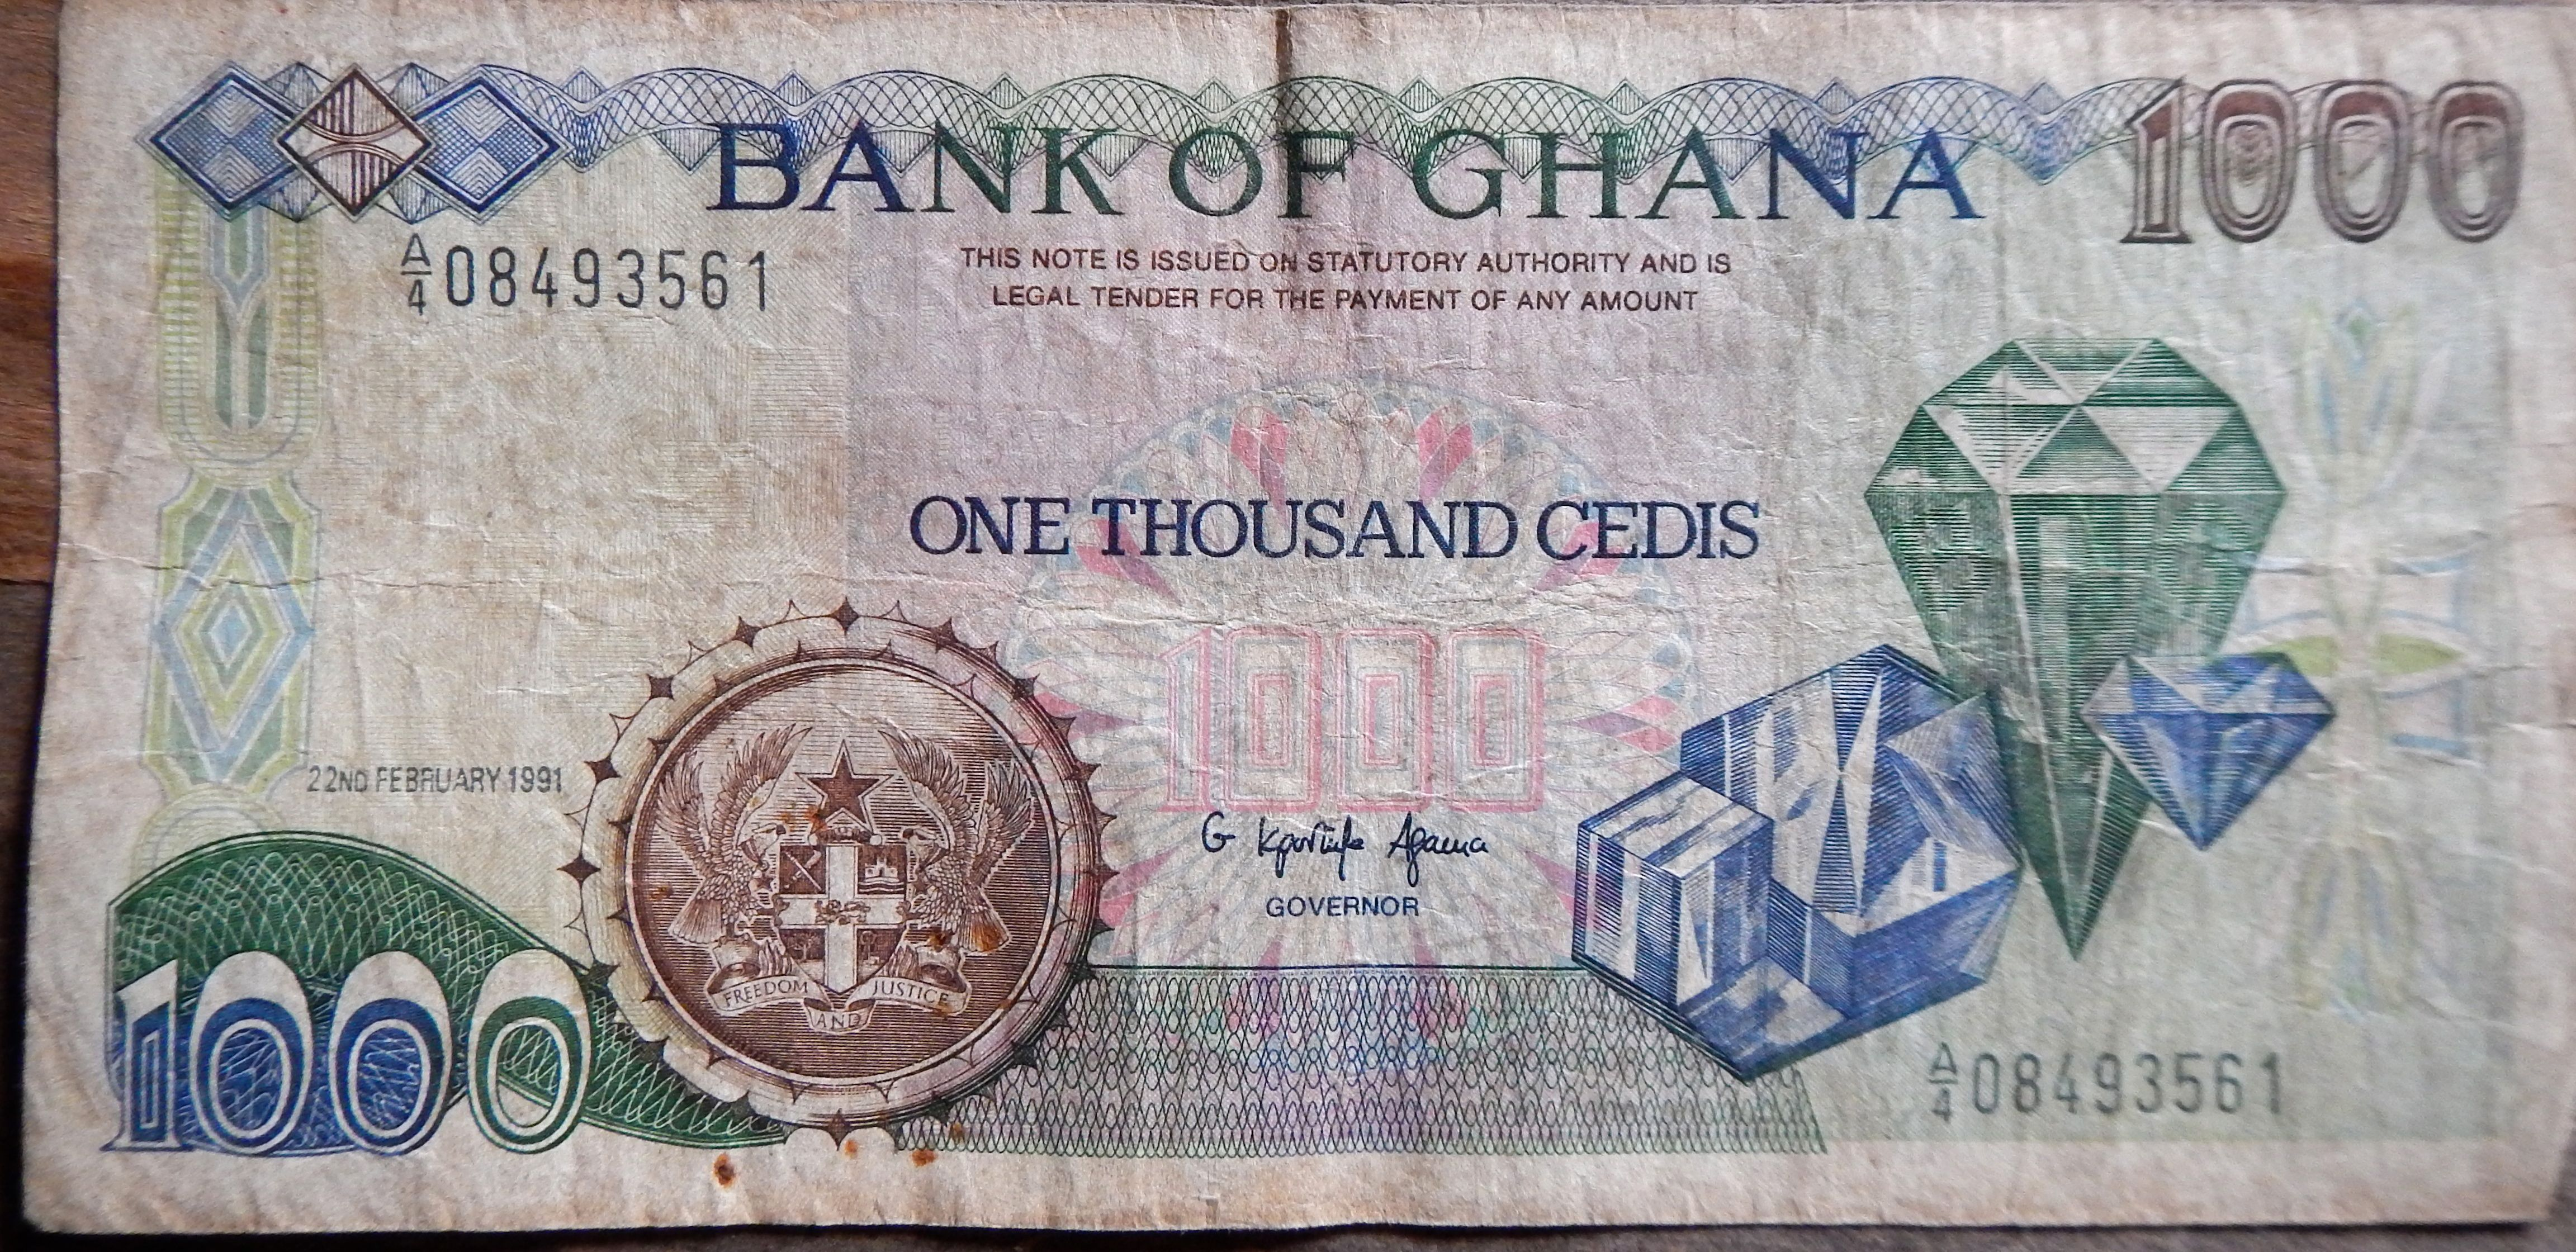 Bank Of Ghana Image By Teri Thomas On Gcc Share Legal Tender Book Cover